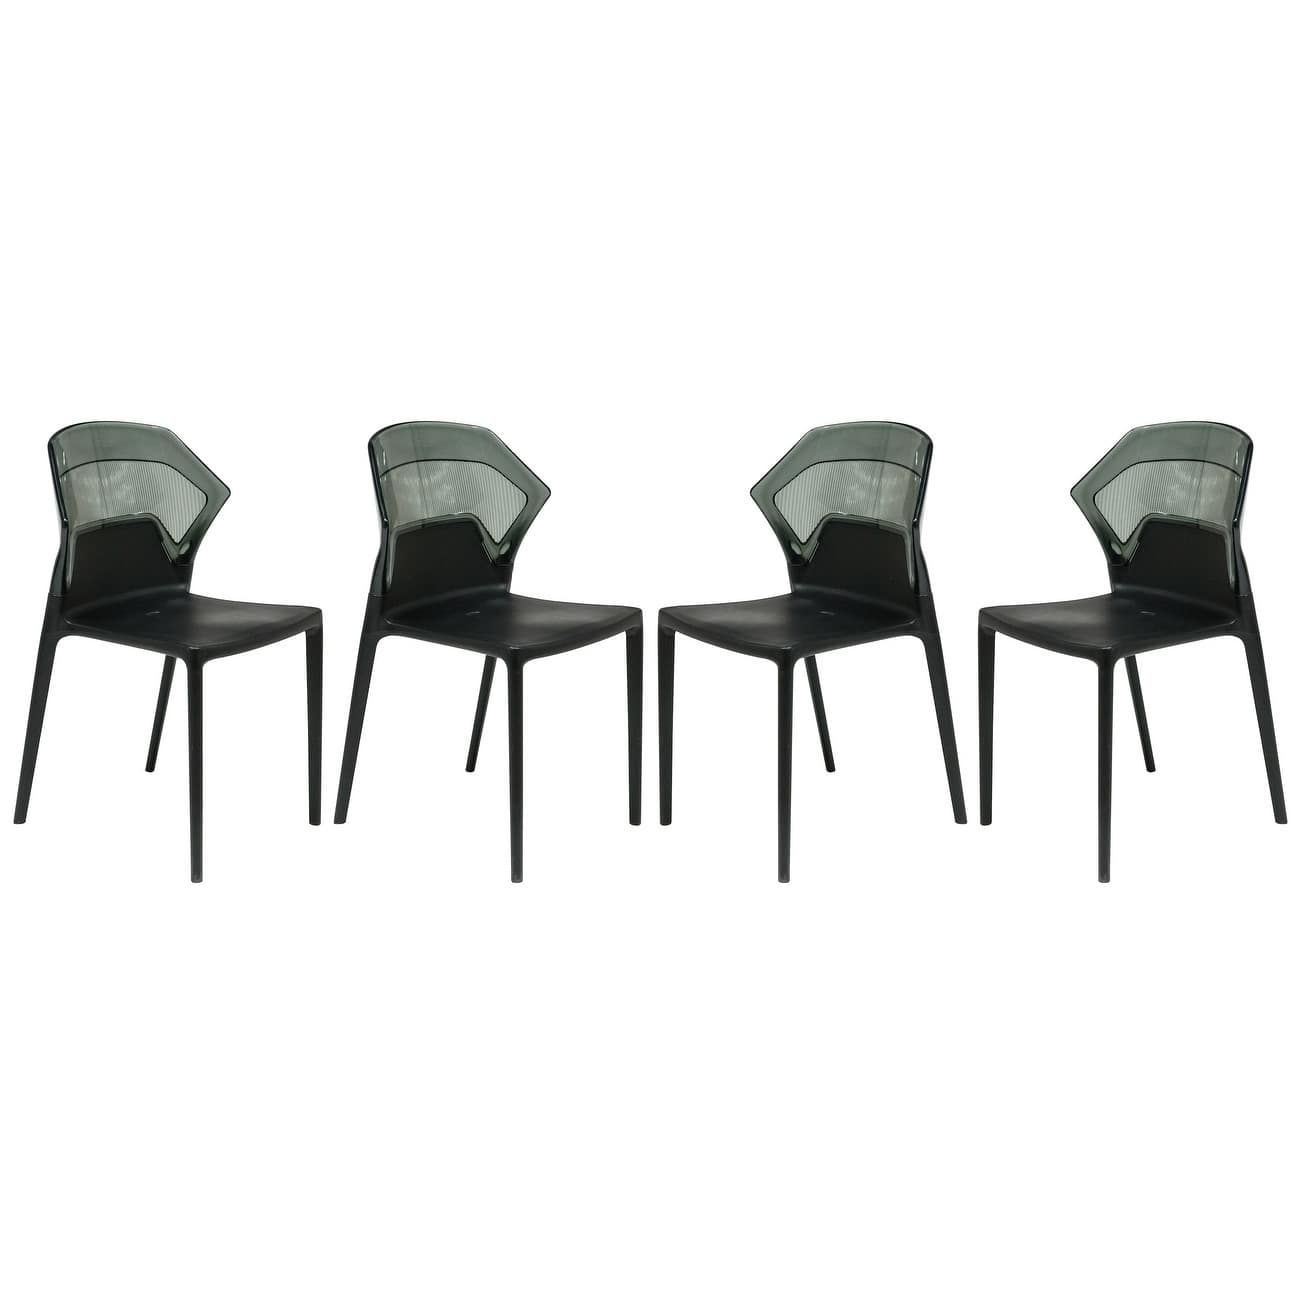 LeisureMod Walton 2 tone Black Dining Chairs Set of 4